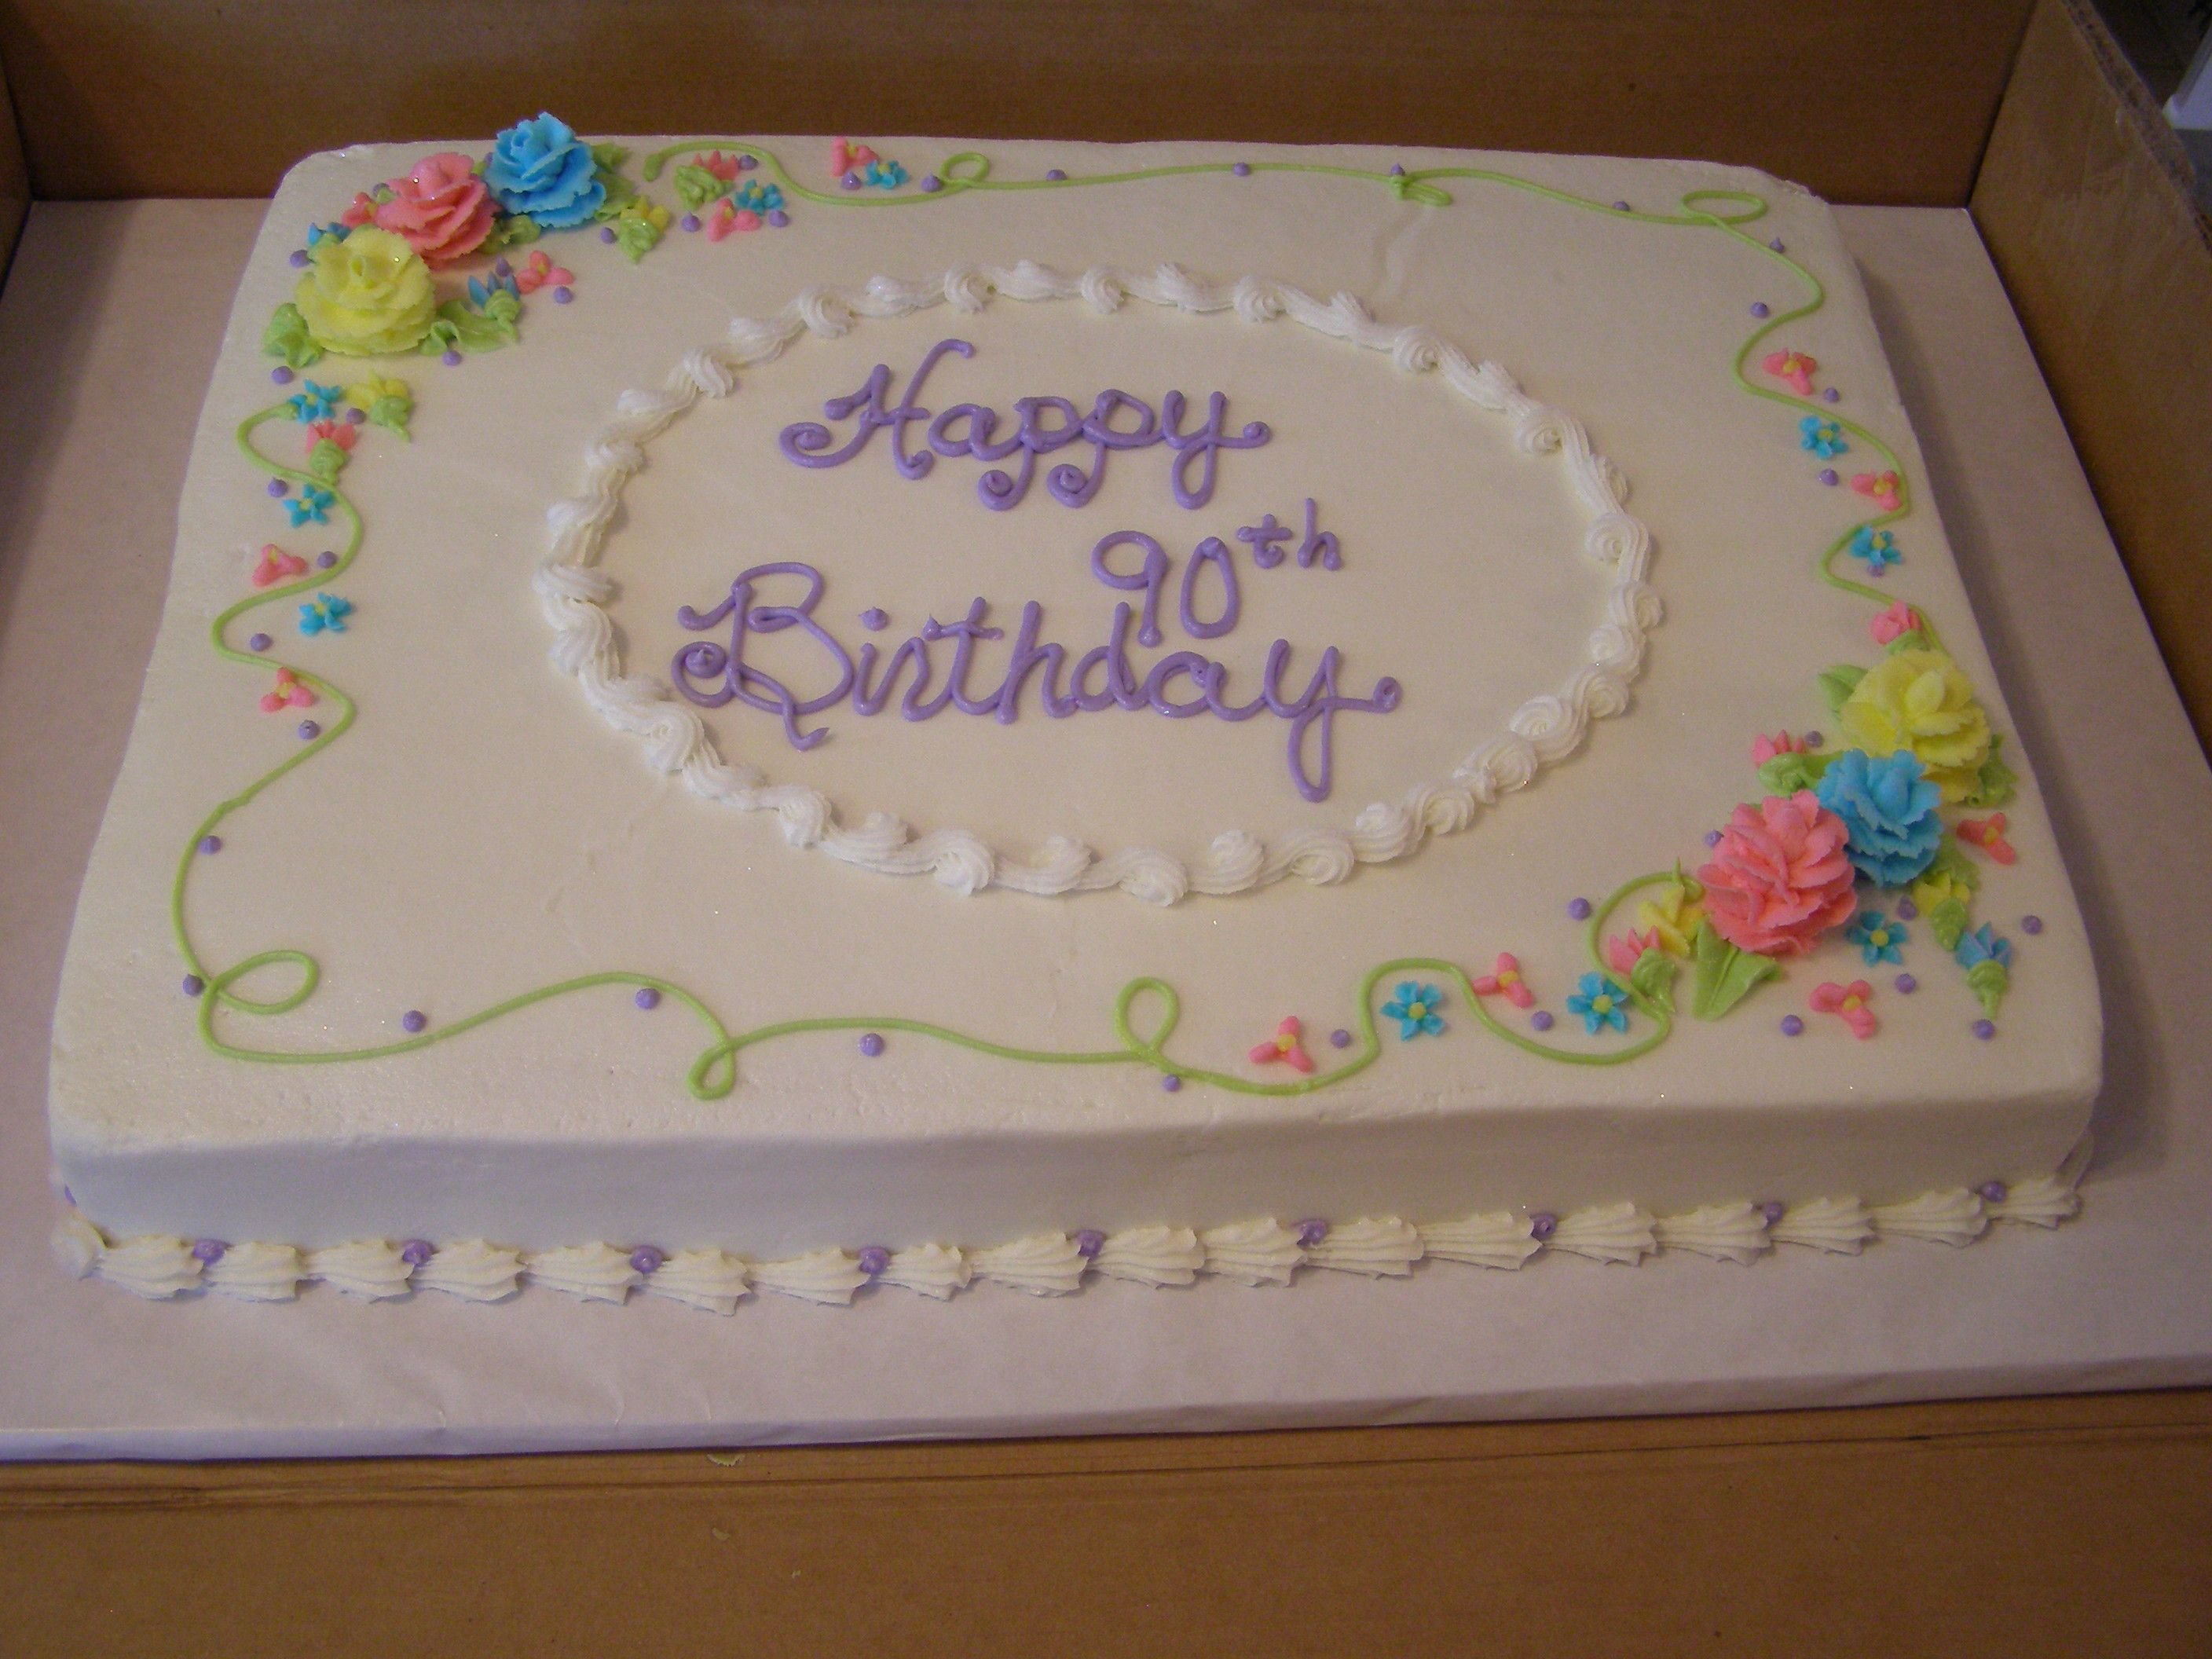 Sheet Cake Decorated With Flowers : sheet cake with flowers - sheet cakes are unfortunatly ...